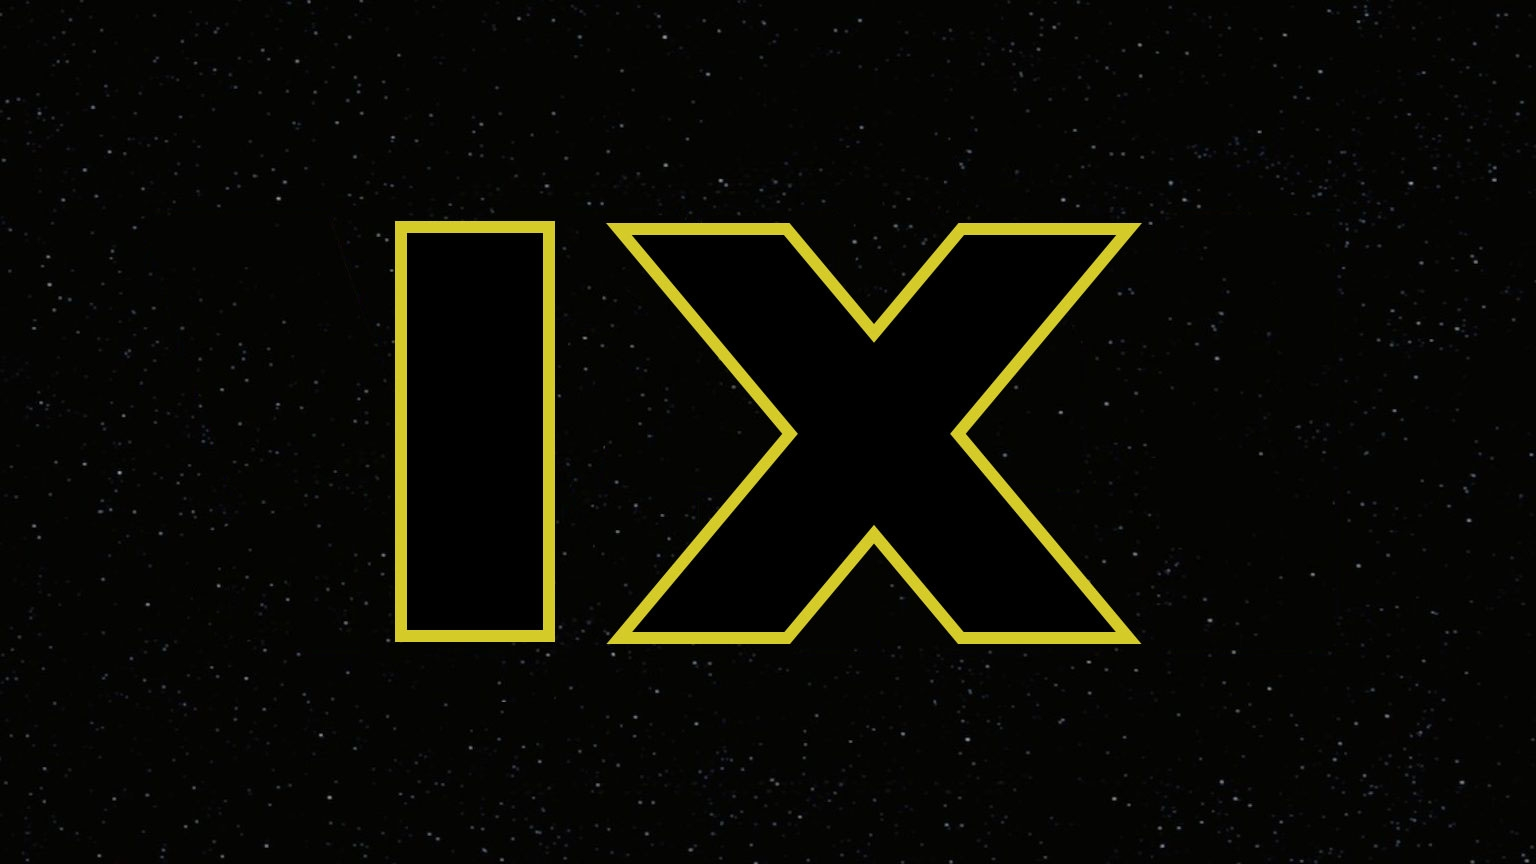 Star_wars_episode_ix_logo.jpg